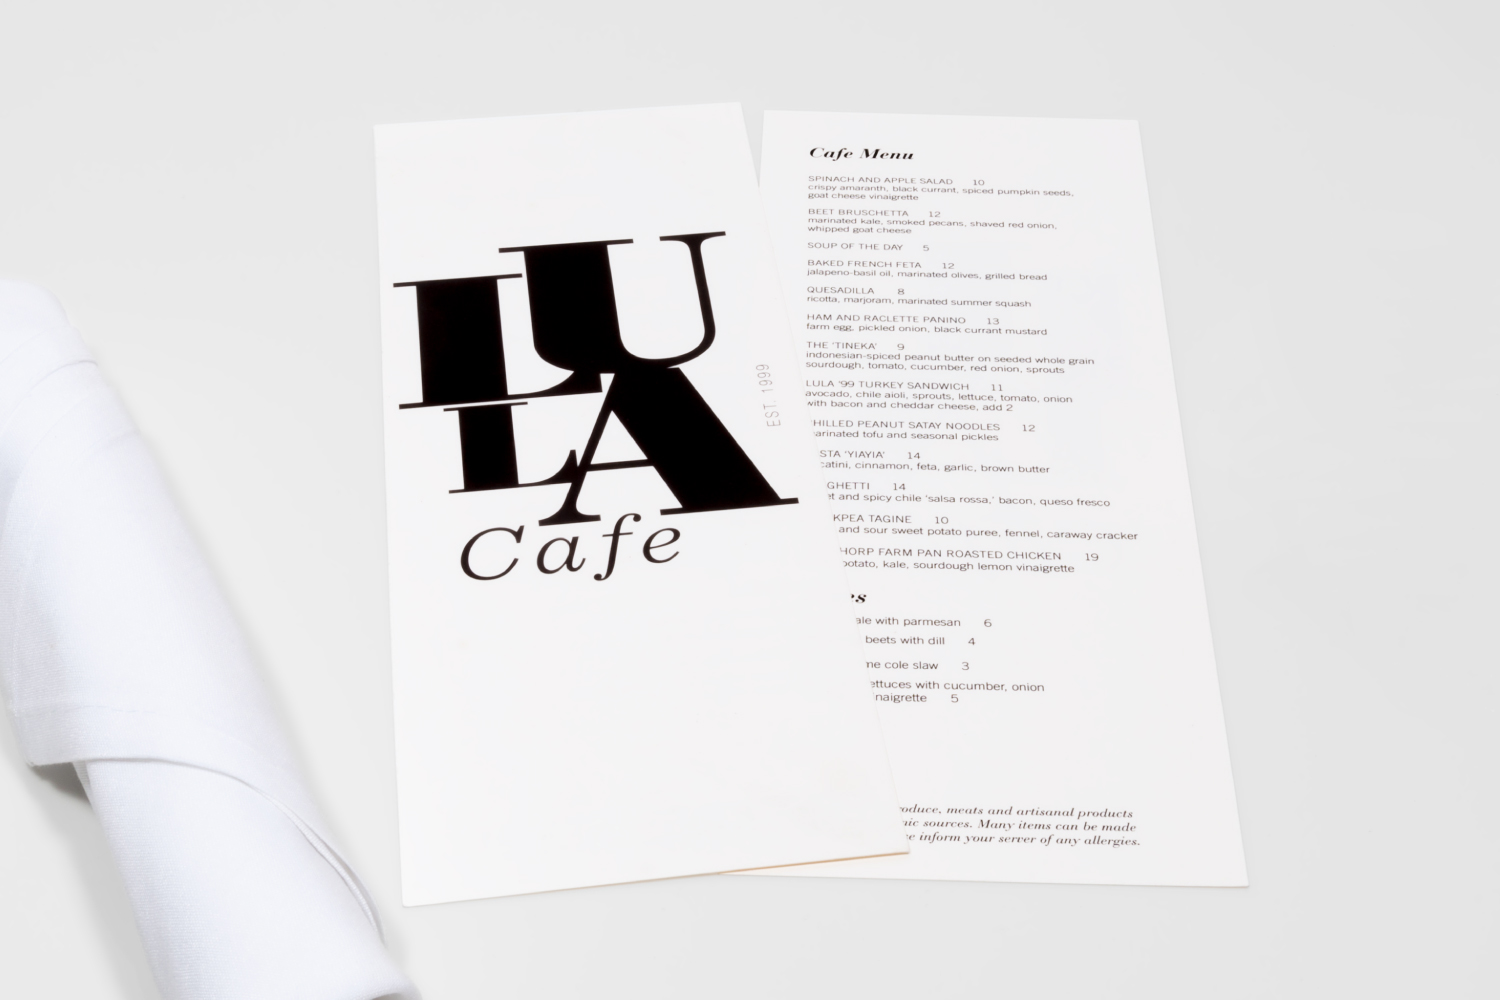 Lula Cafe branding design and menu design.